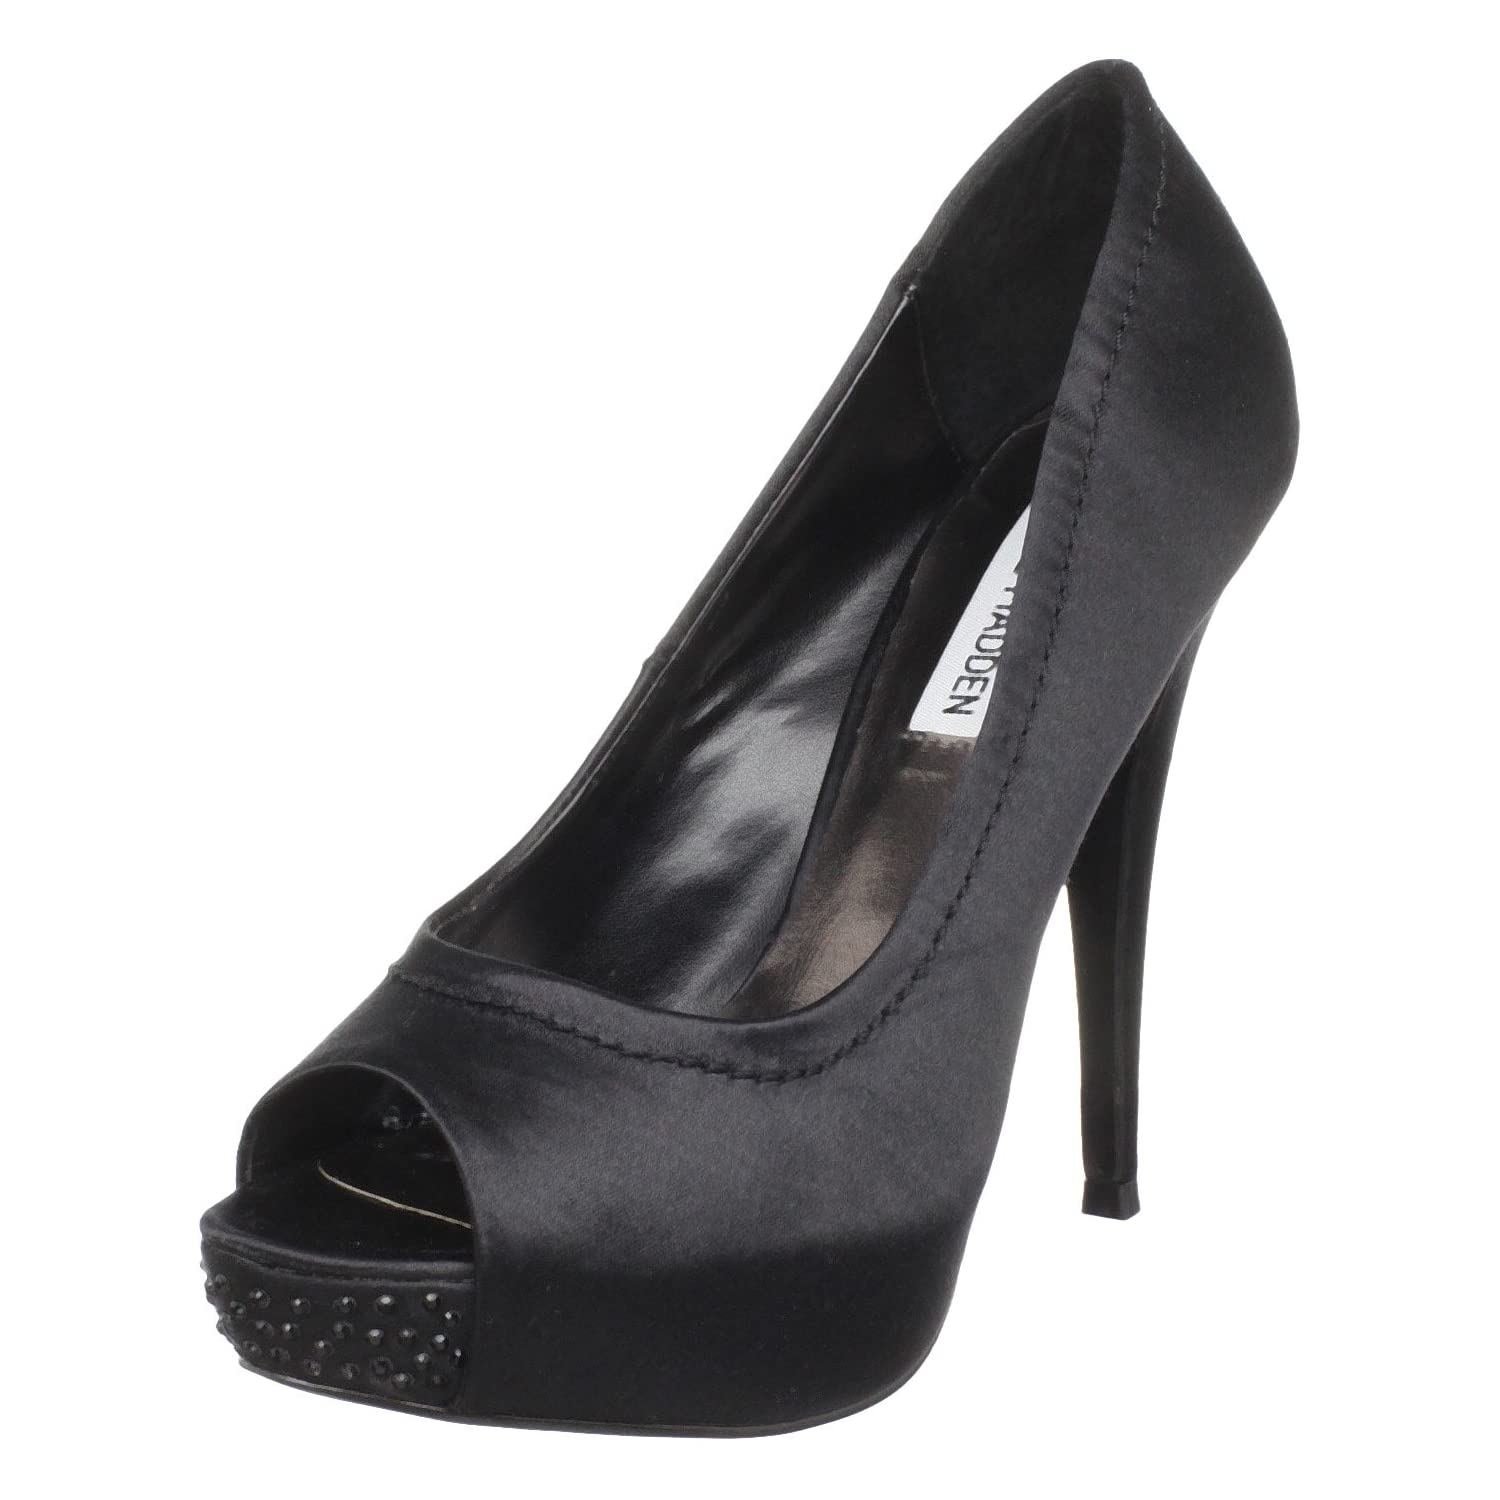 Steve Madden - Feelixx Open-Toe Pump :  pumps heels shoes womens shoes